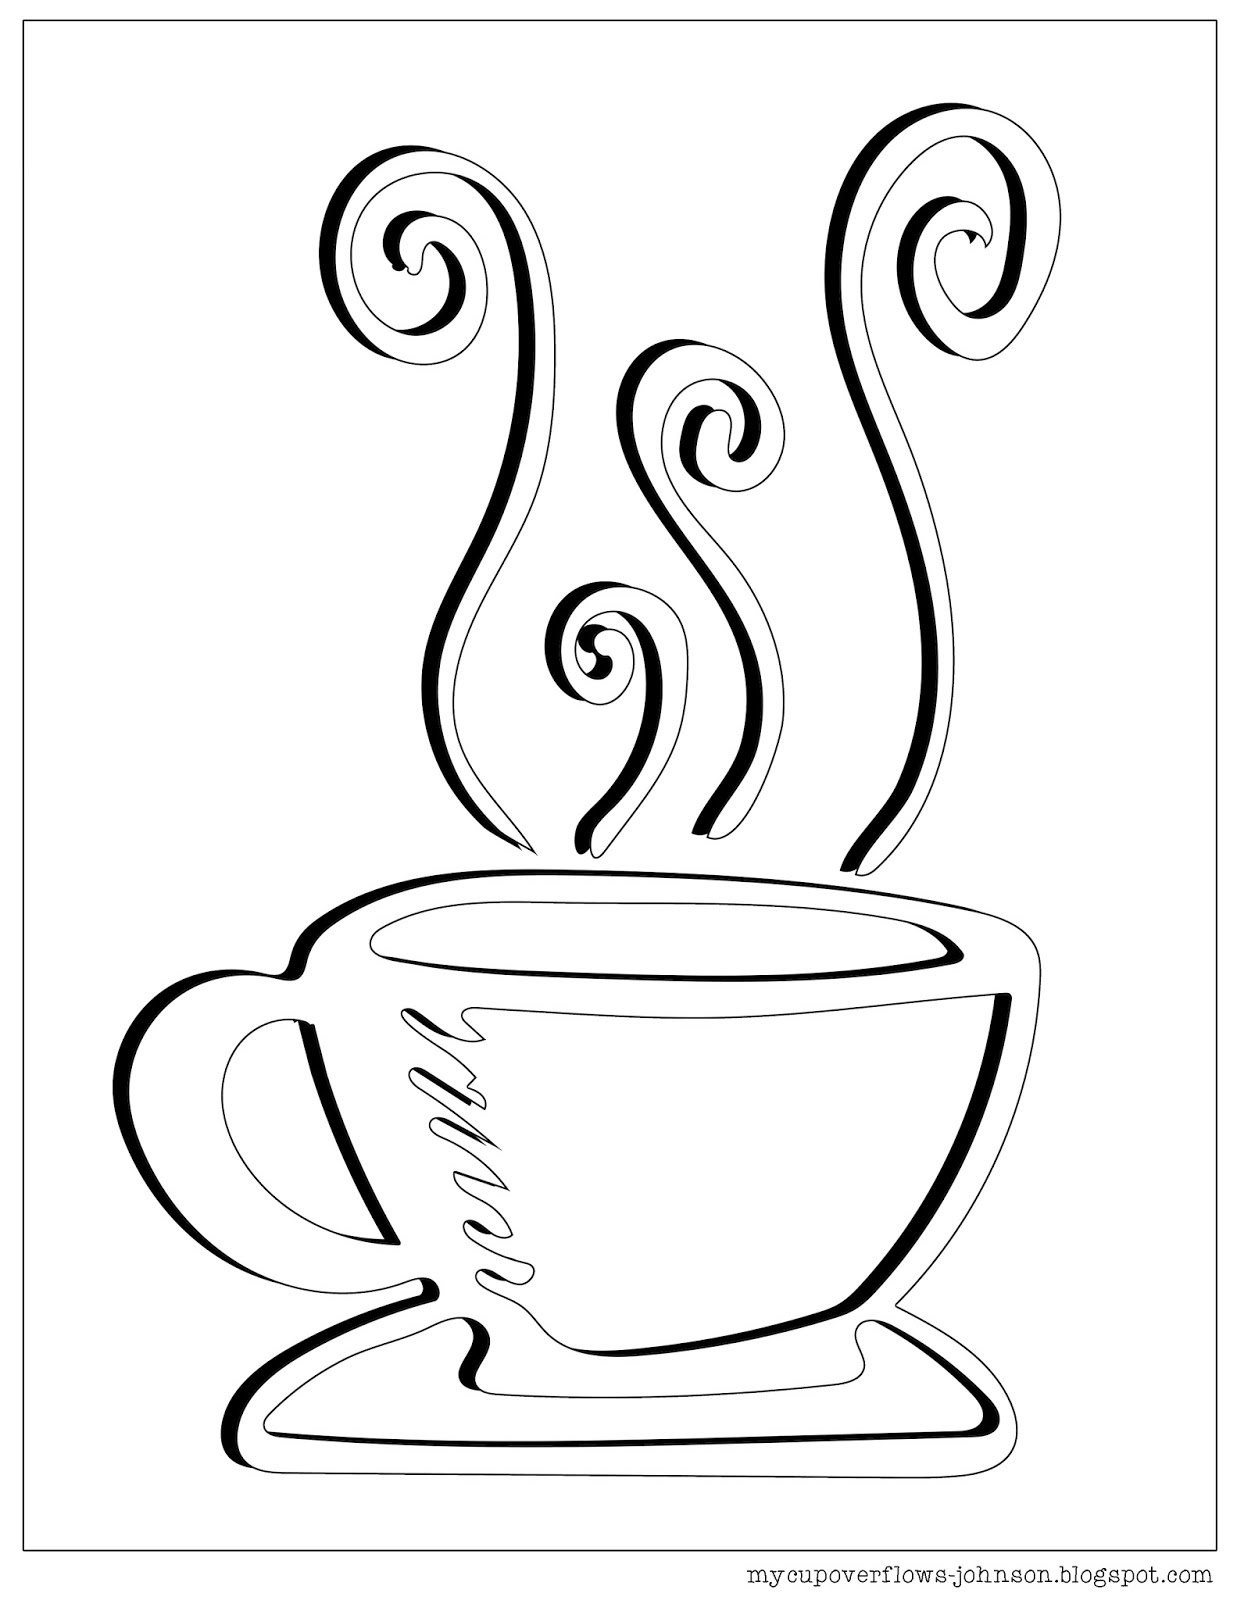 This is an image of Terrible Coffee Cup Coloring Page